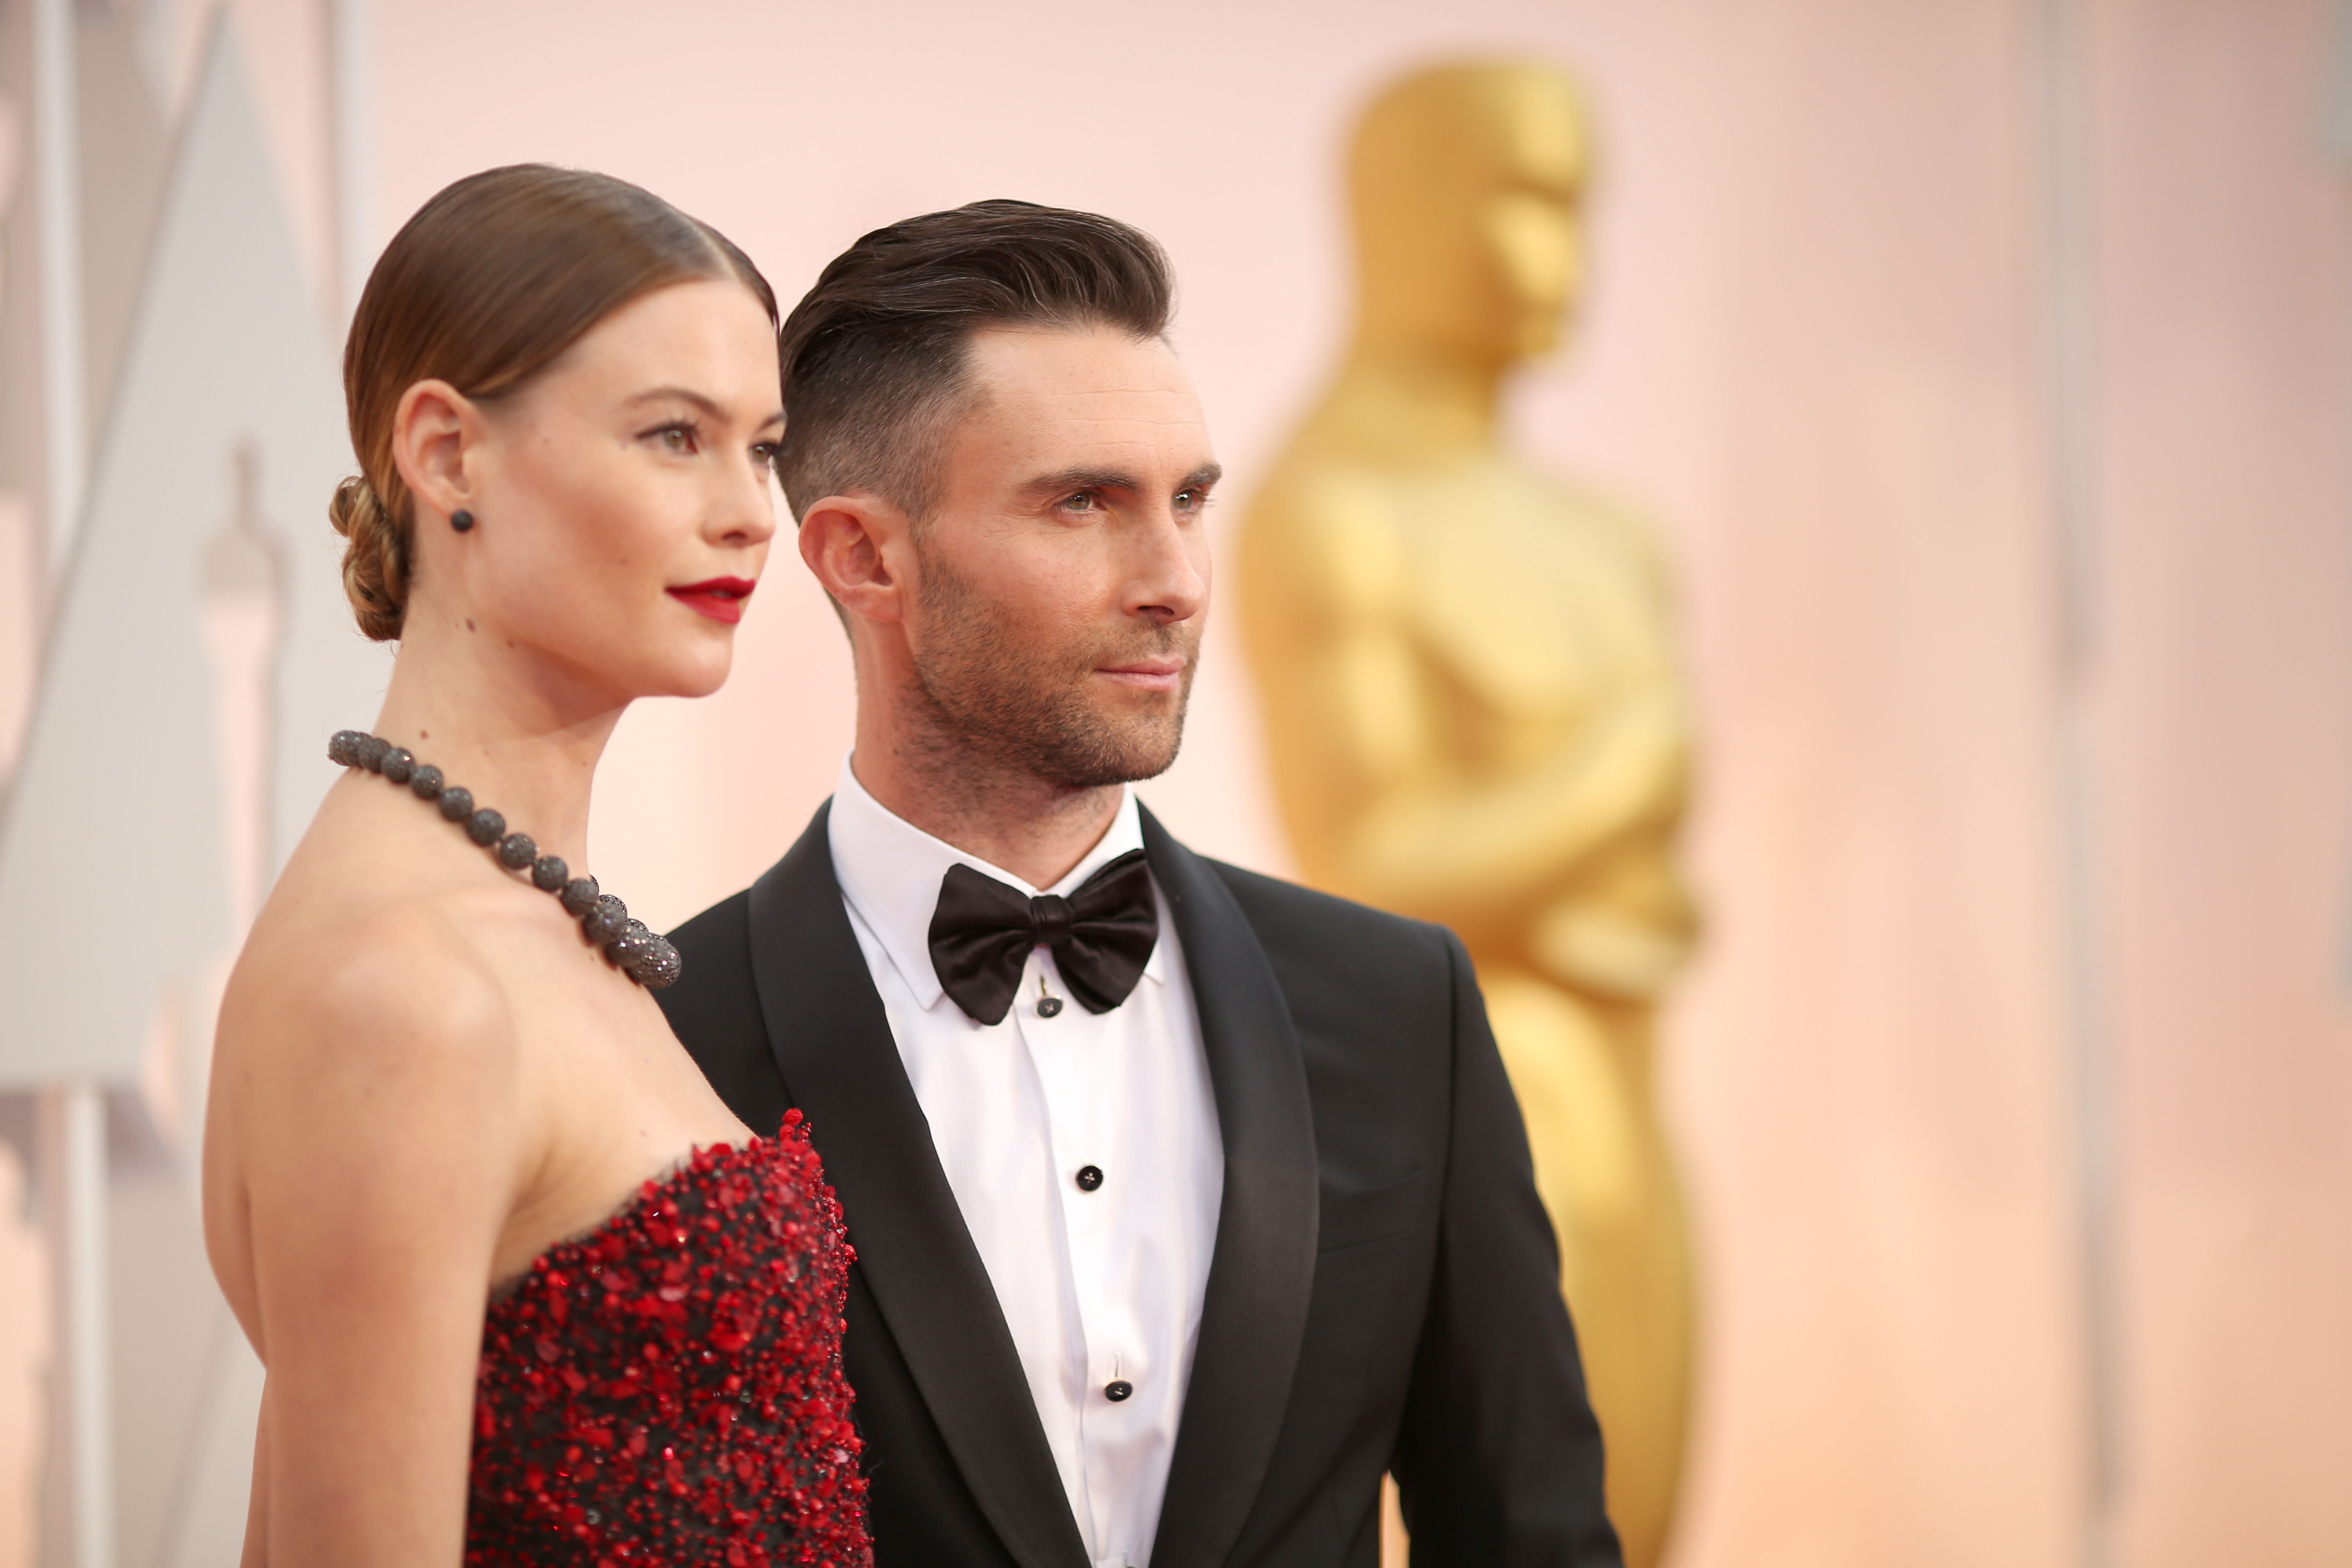 87th Annual Academy Awards - Red Carpet